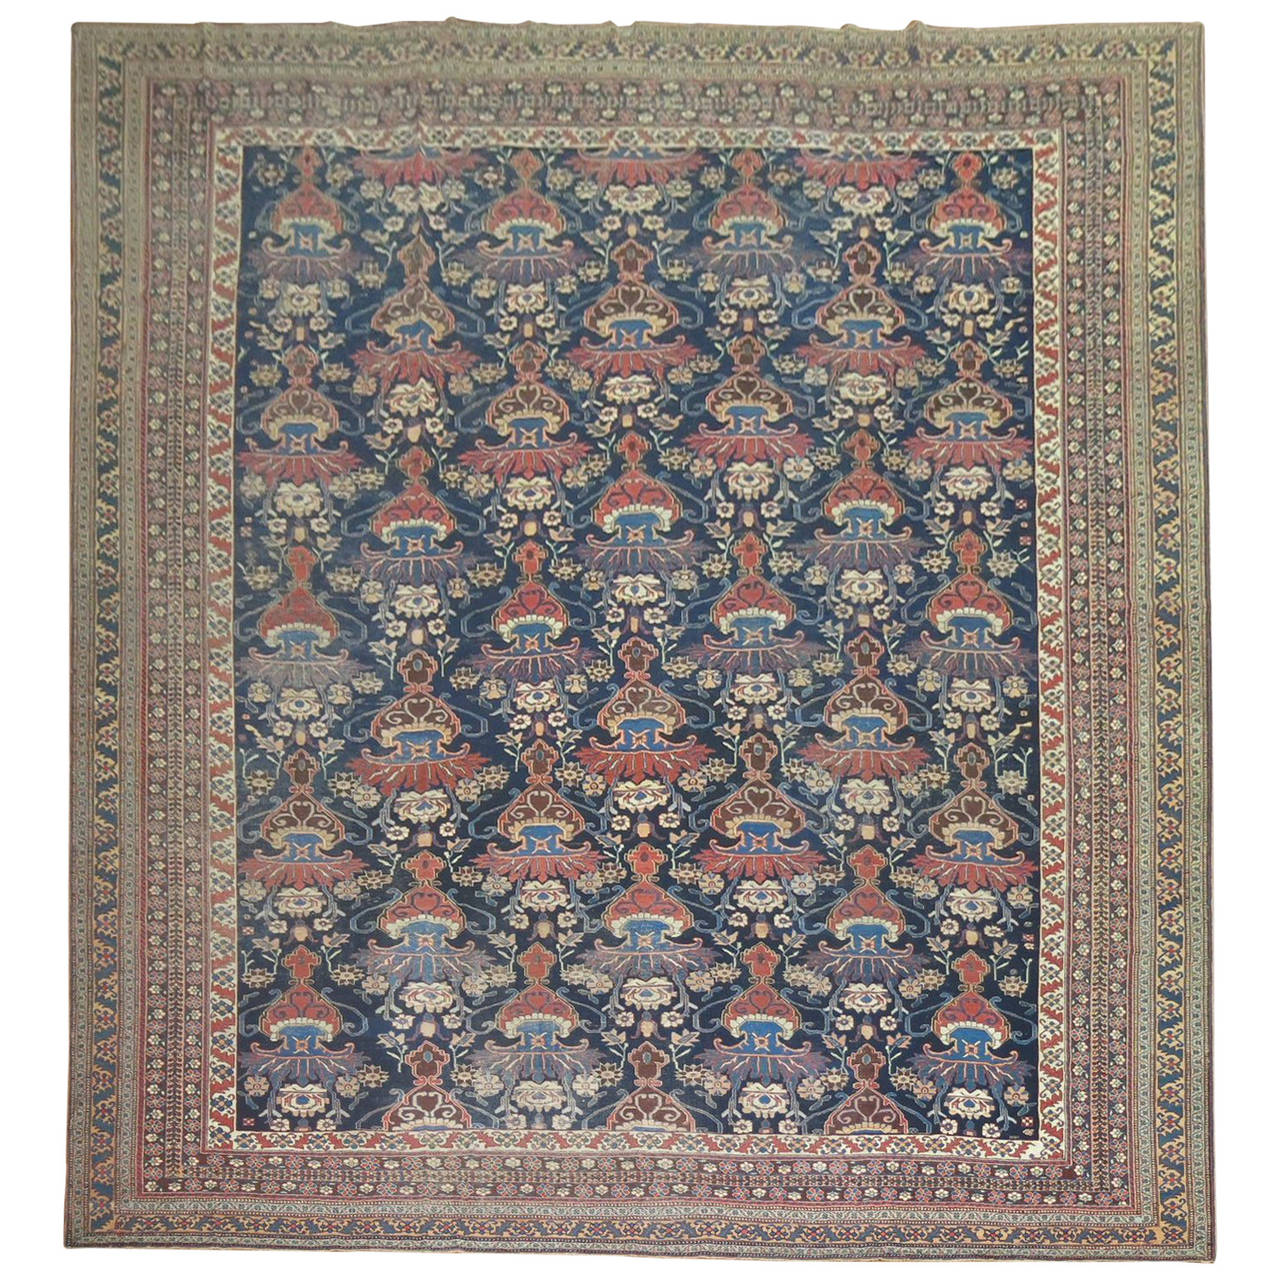 Antique Persian Afshar Oversize Rug 1